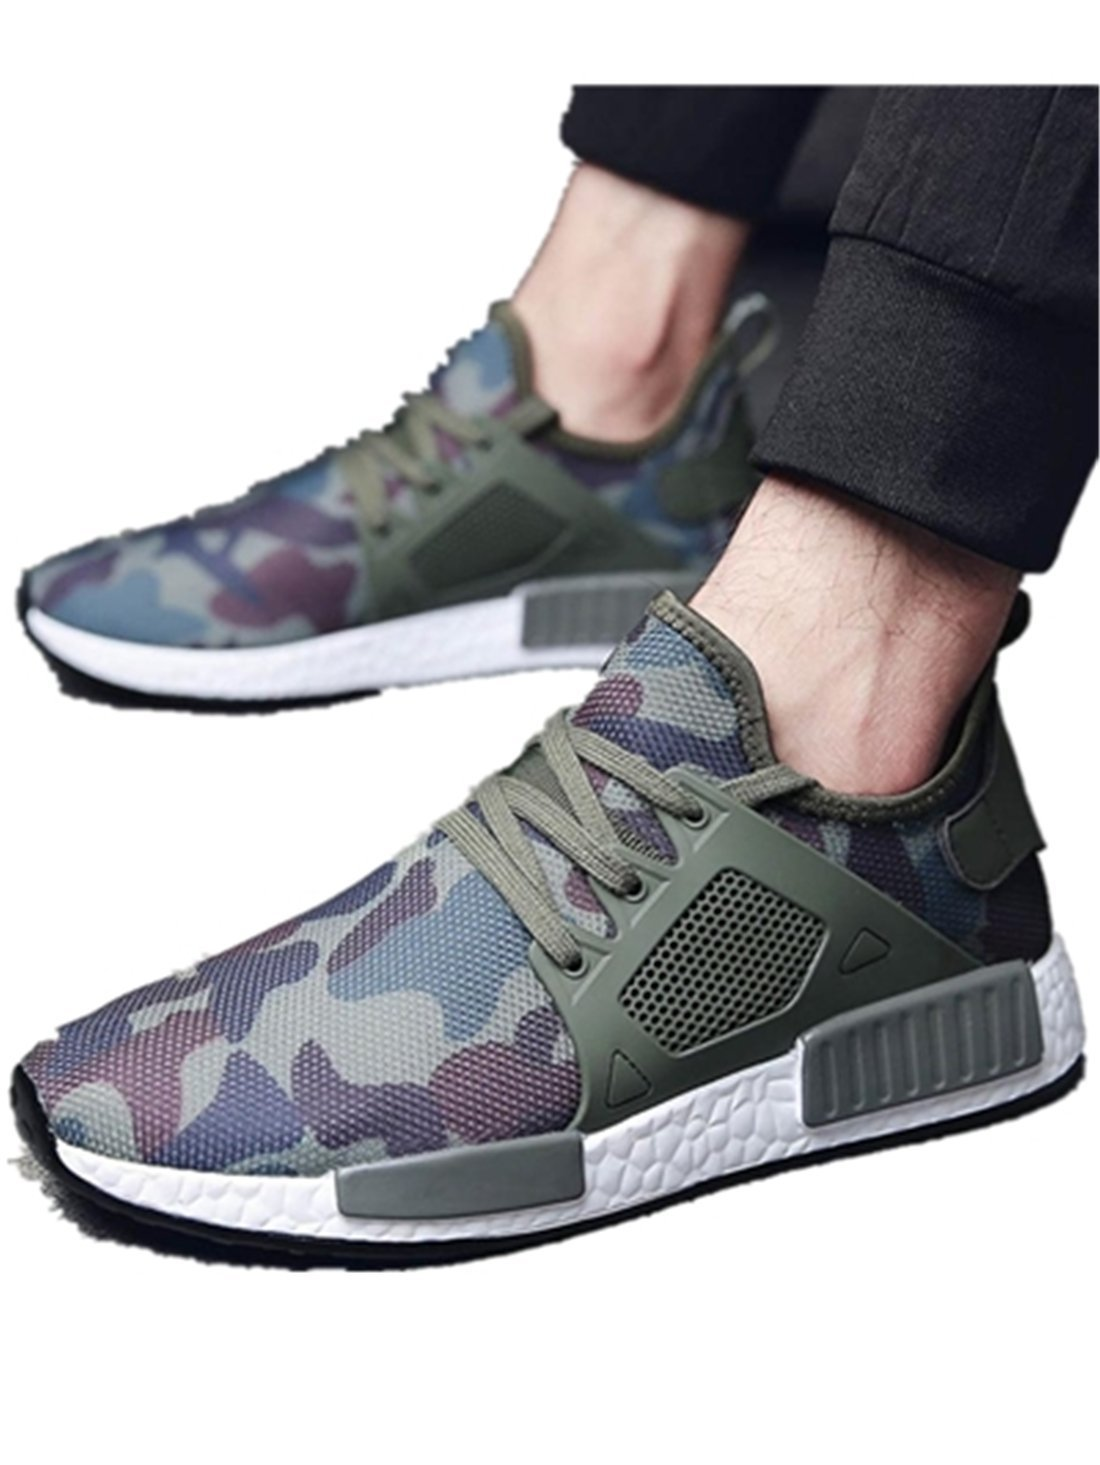 Hemlock Men Outdoors Shoes, Men's Athletic Shoes Casual Sneakers Running Breathable Sports Shoes (US:8.5, Green)